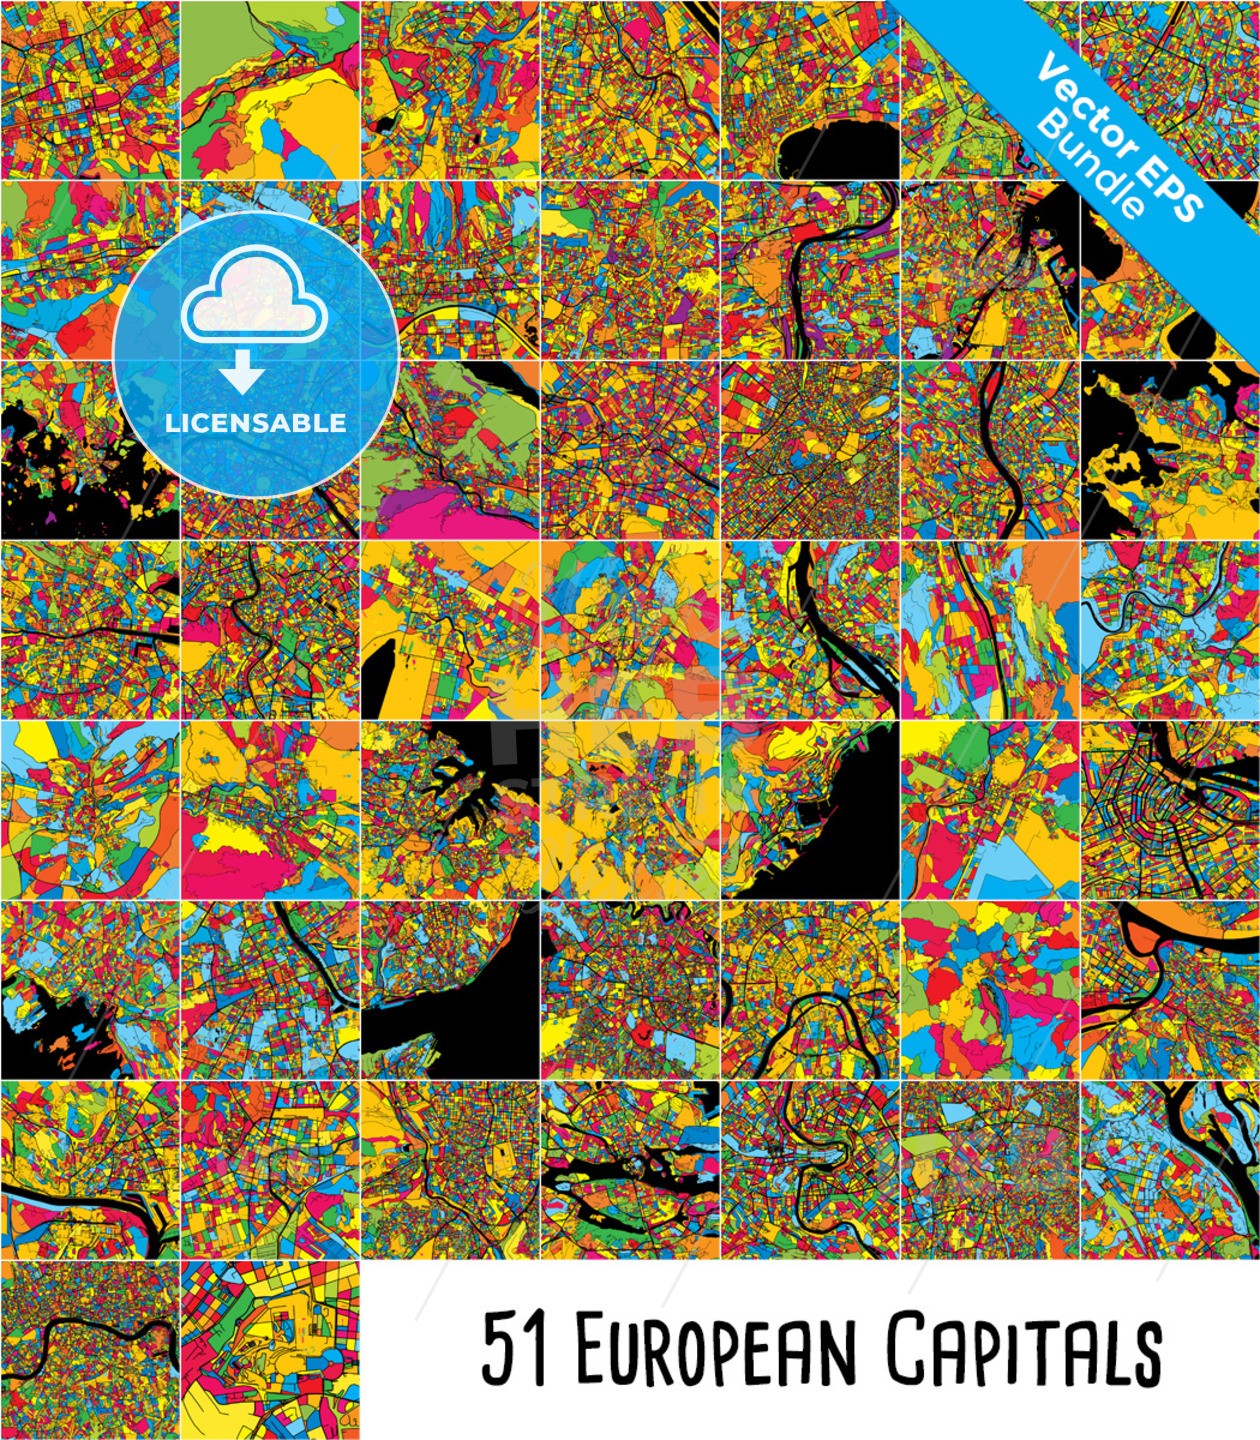 51 European Capital Cities, Colorful Maps Bundle - HEBSTREITS